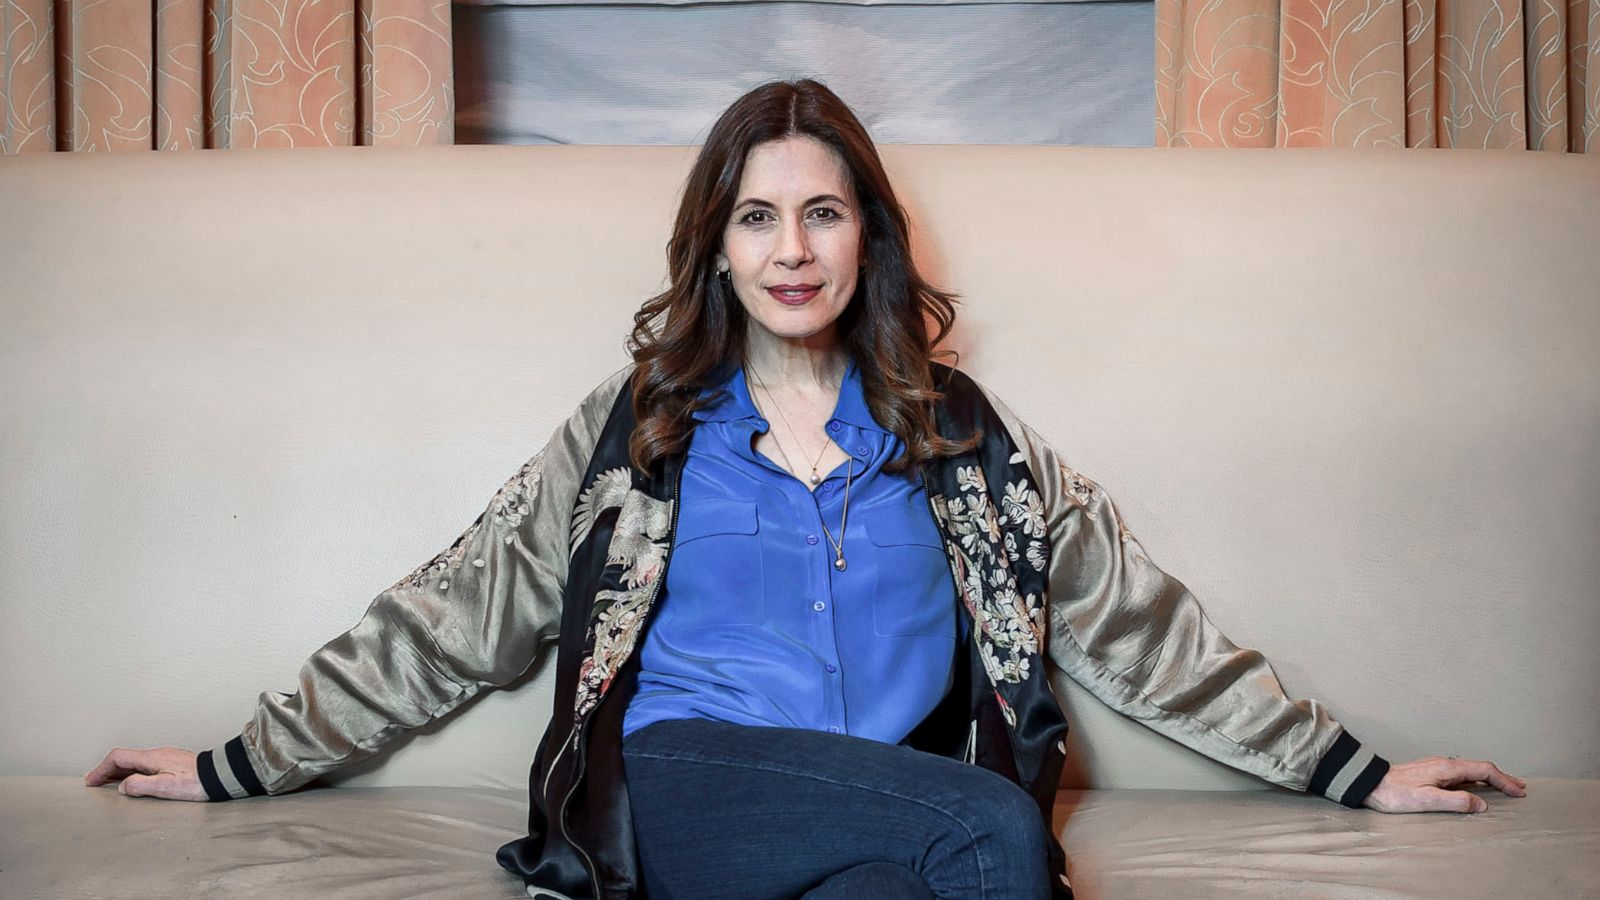 Jessica Hecht having 'Special' moment thanks to Netflix show - ABC News